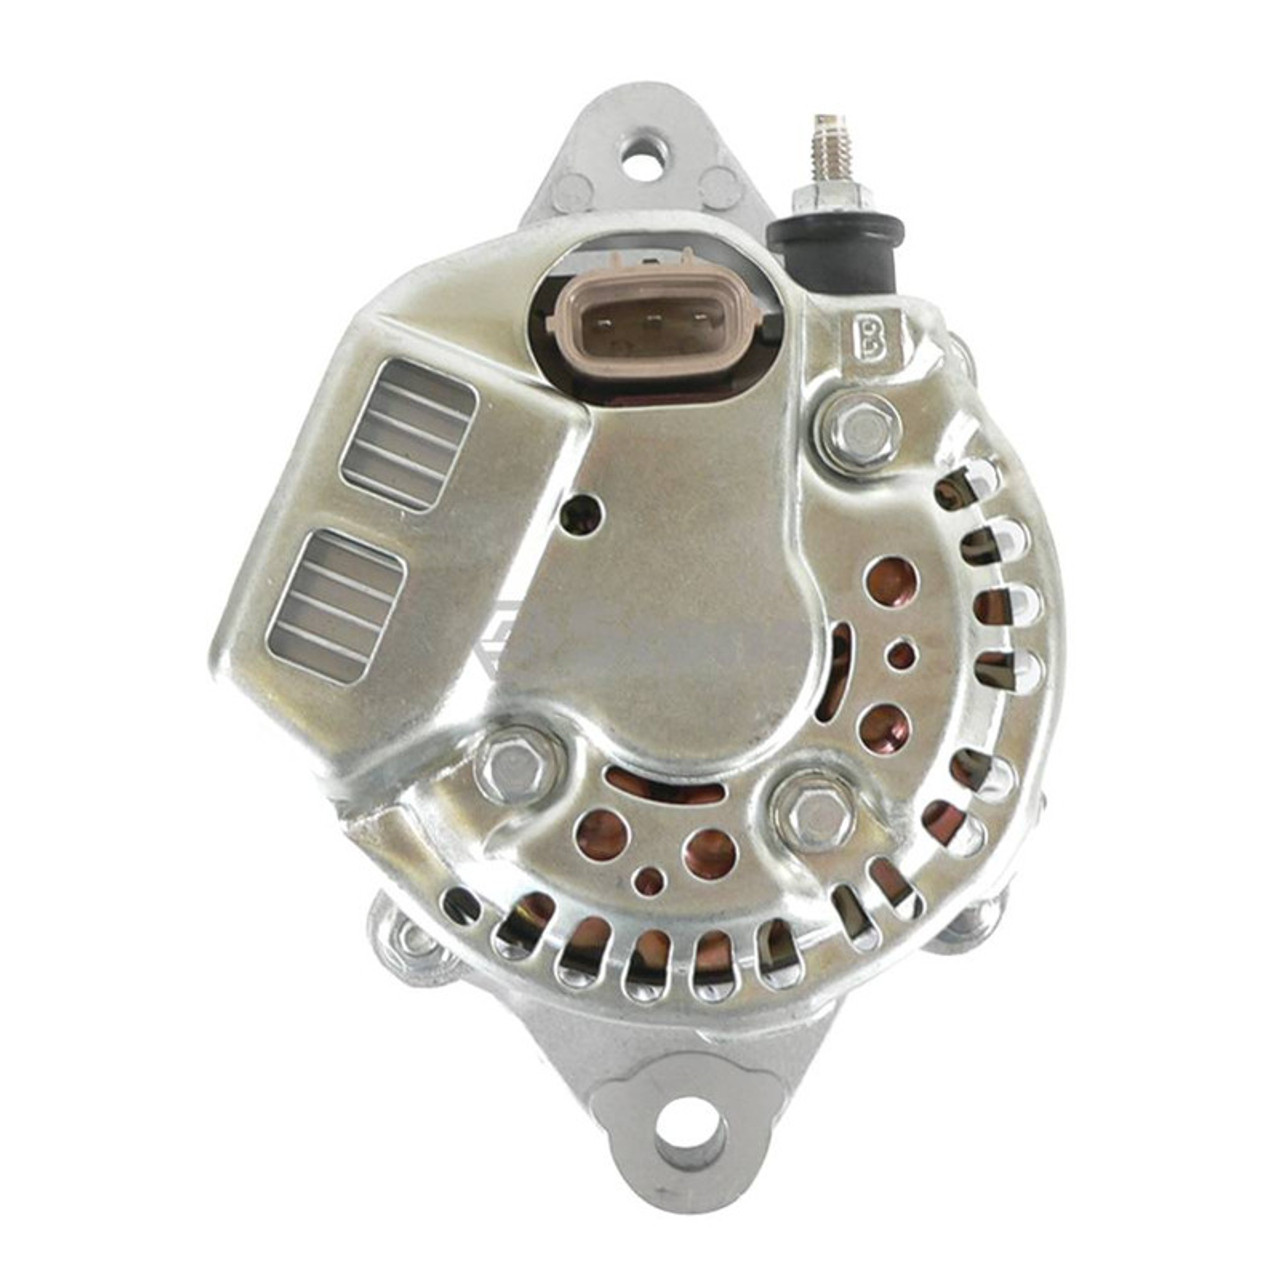 Alternator For Yanmar 12942377200, 129423-77200